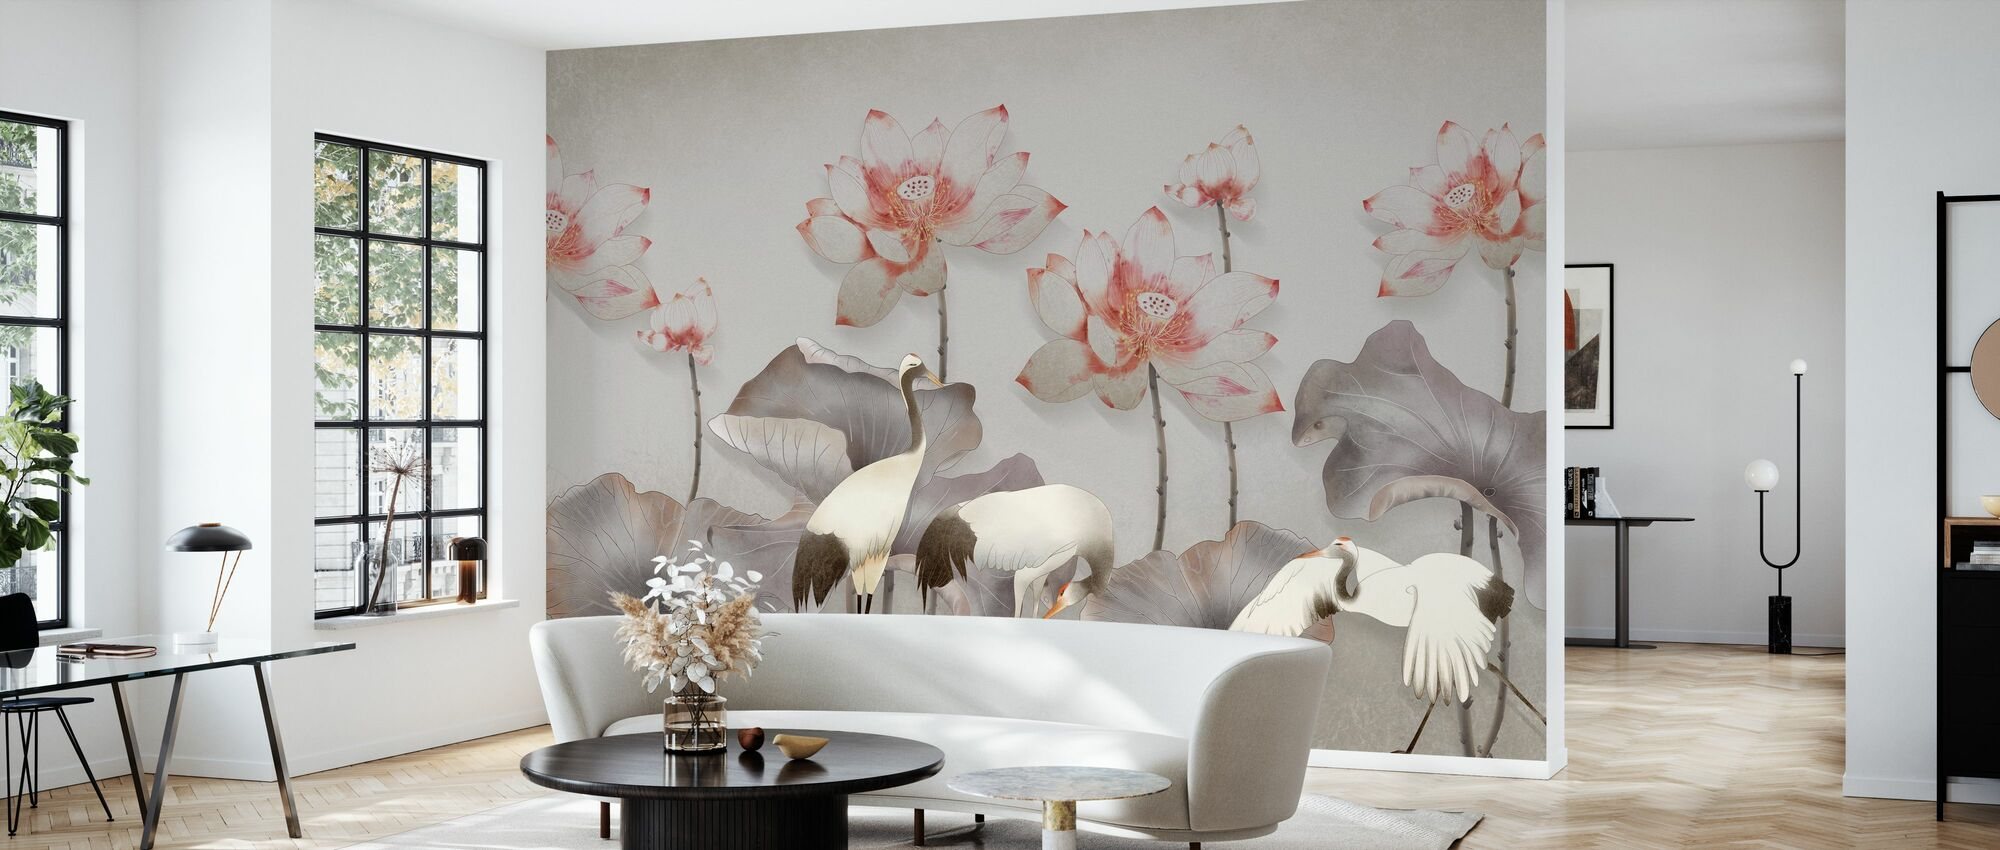 Birds and greenery - Wallpaper - Living Room